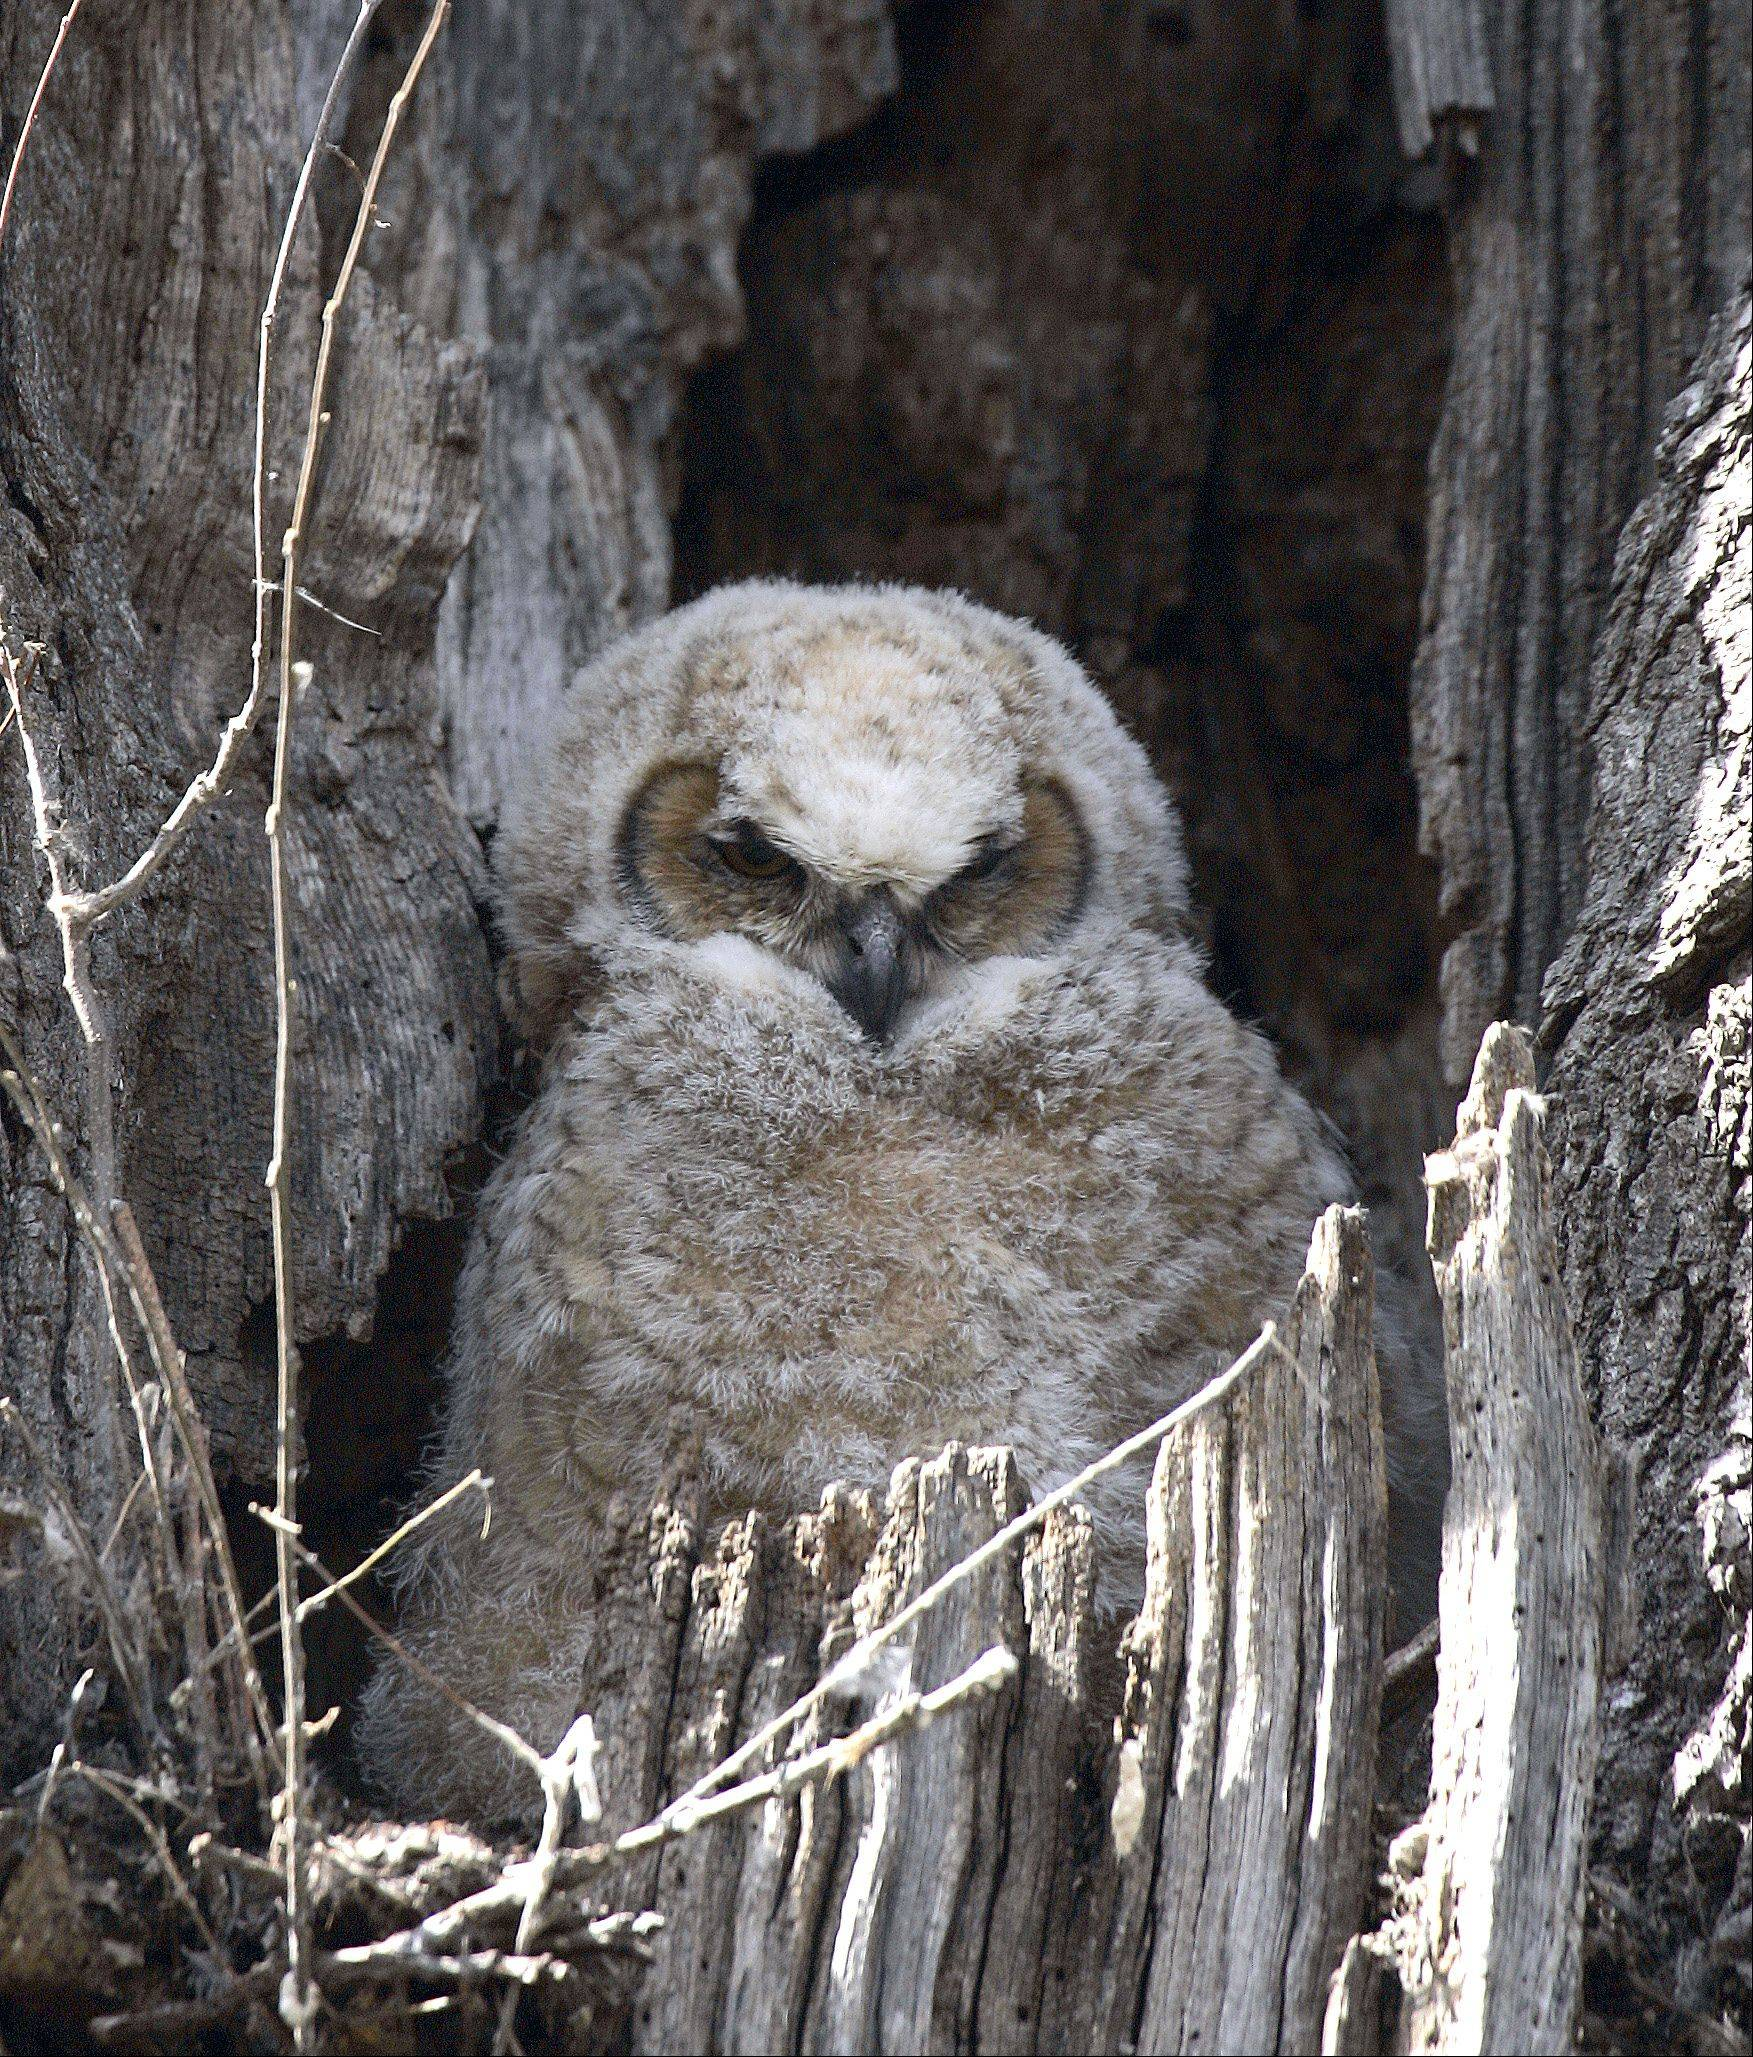 A baby great horned owl rests in a tree last week in the Fabyan Forest Preserve near Geneva. The mother was close by, keeping an eye on all onlookers.